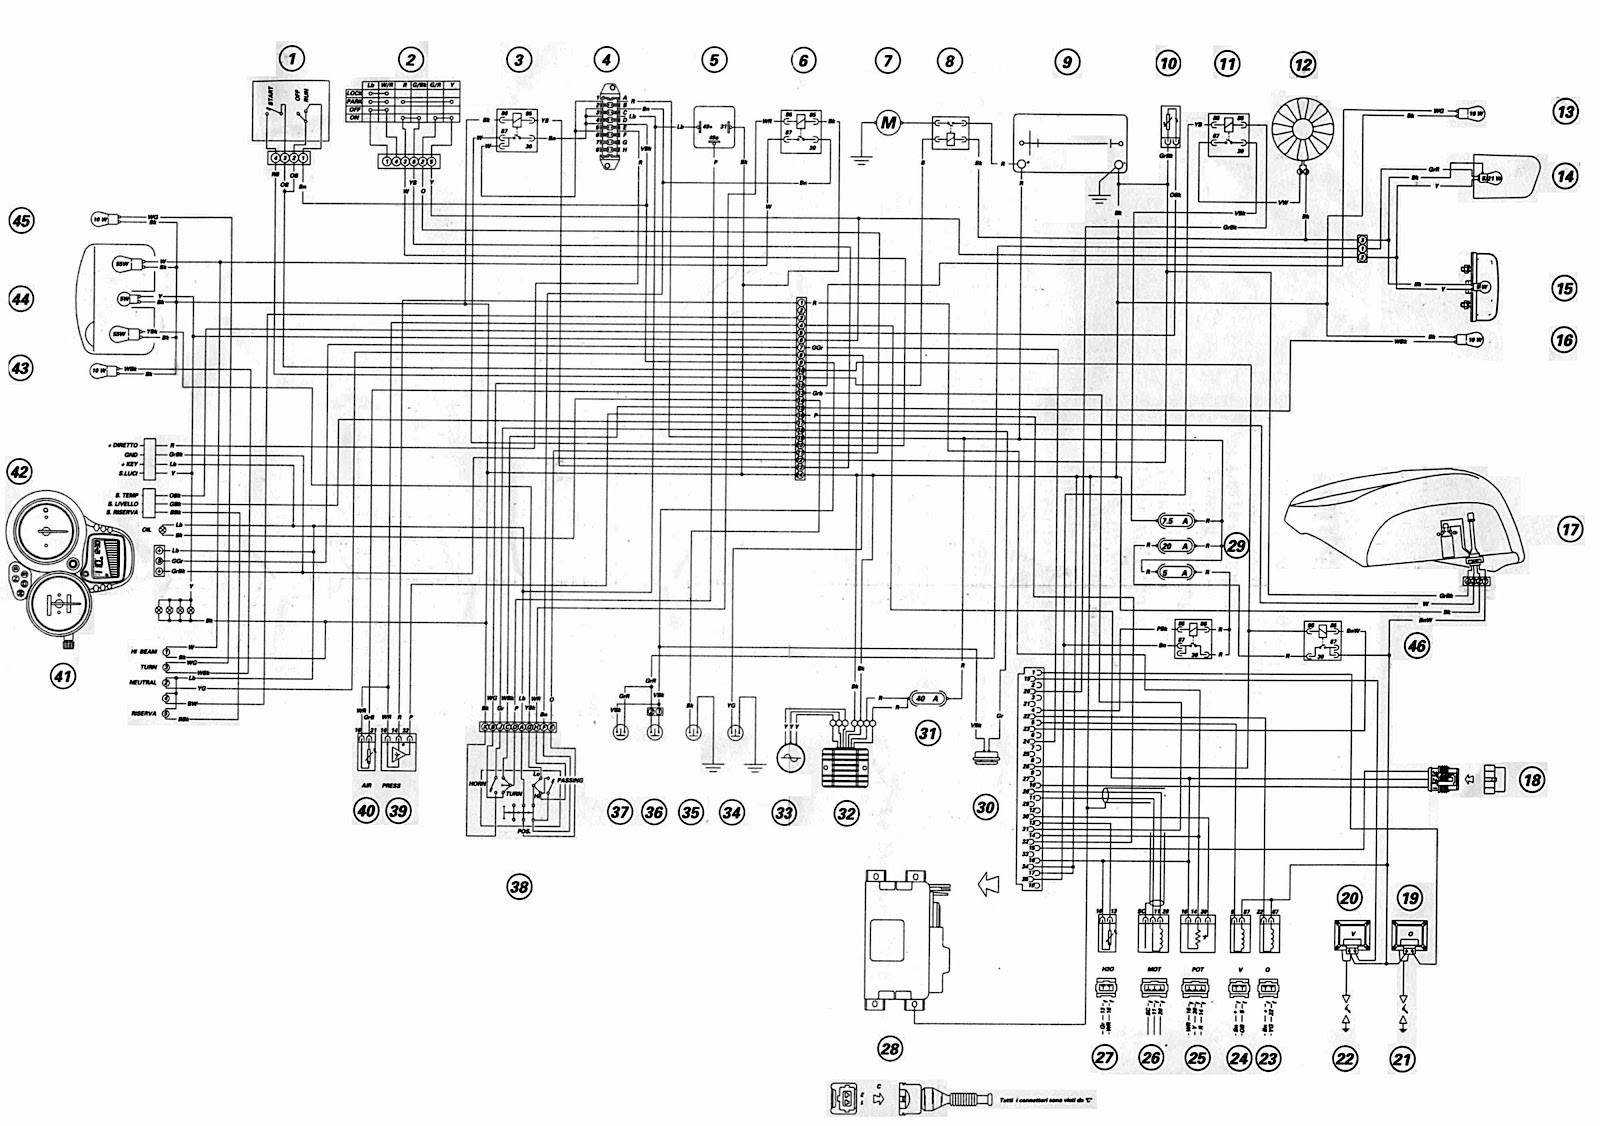 2002 suzuki motorcycle wiring diagram